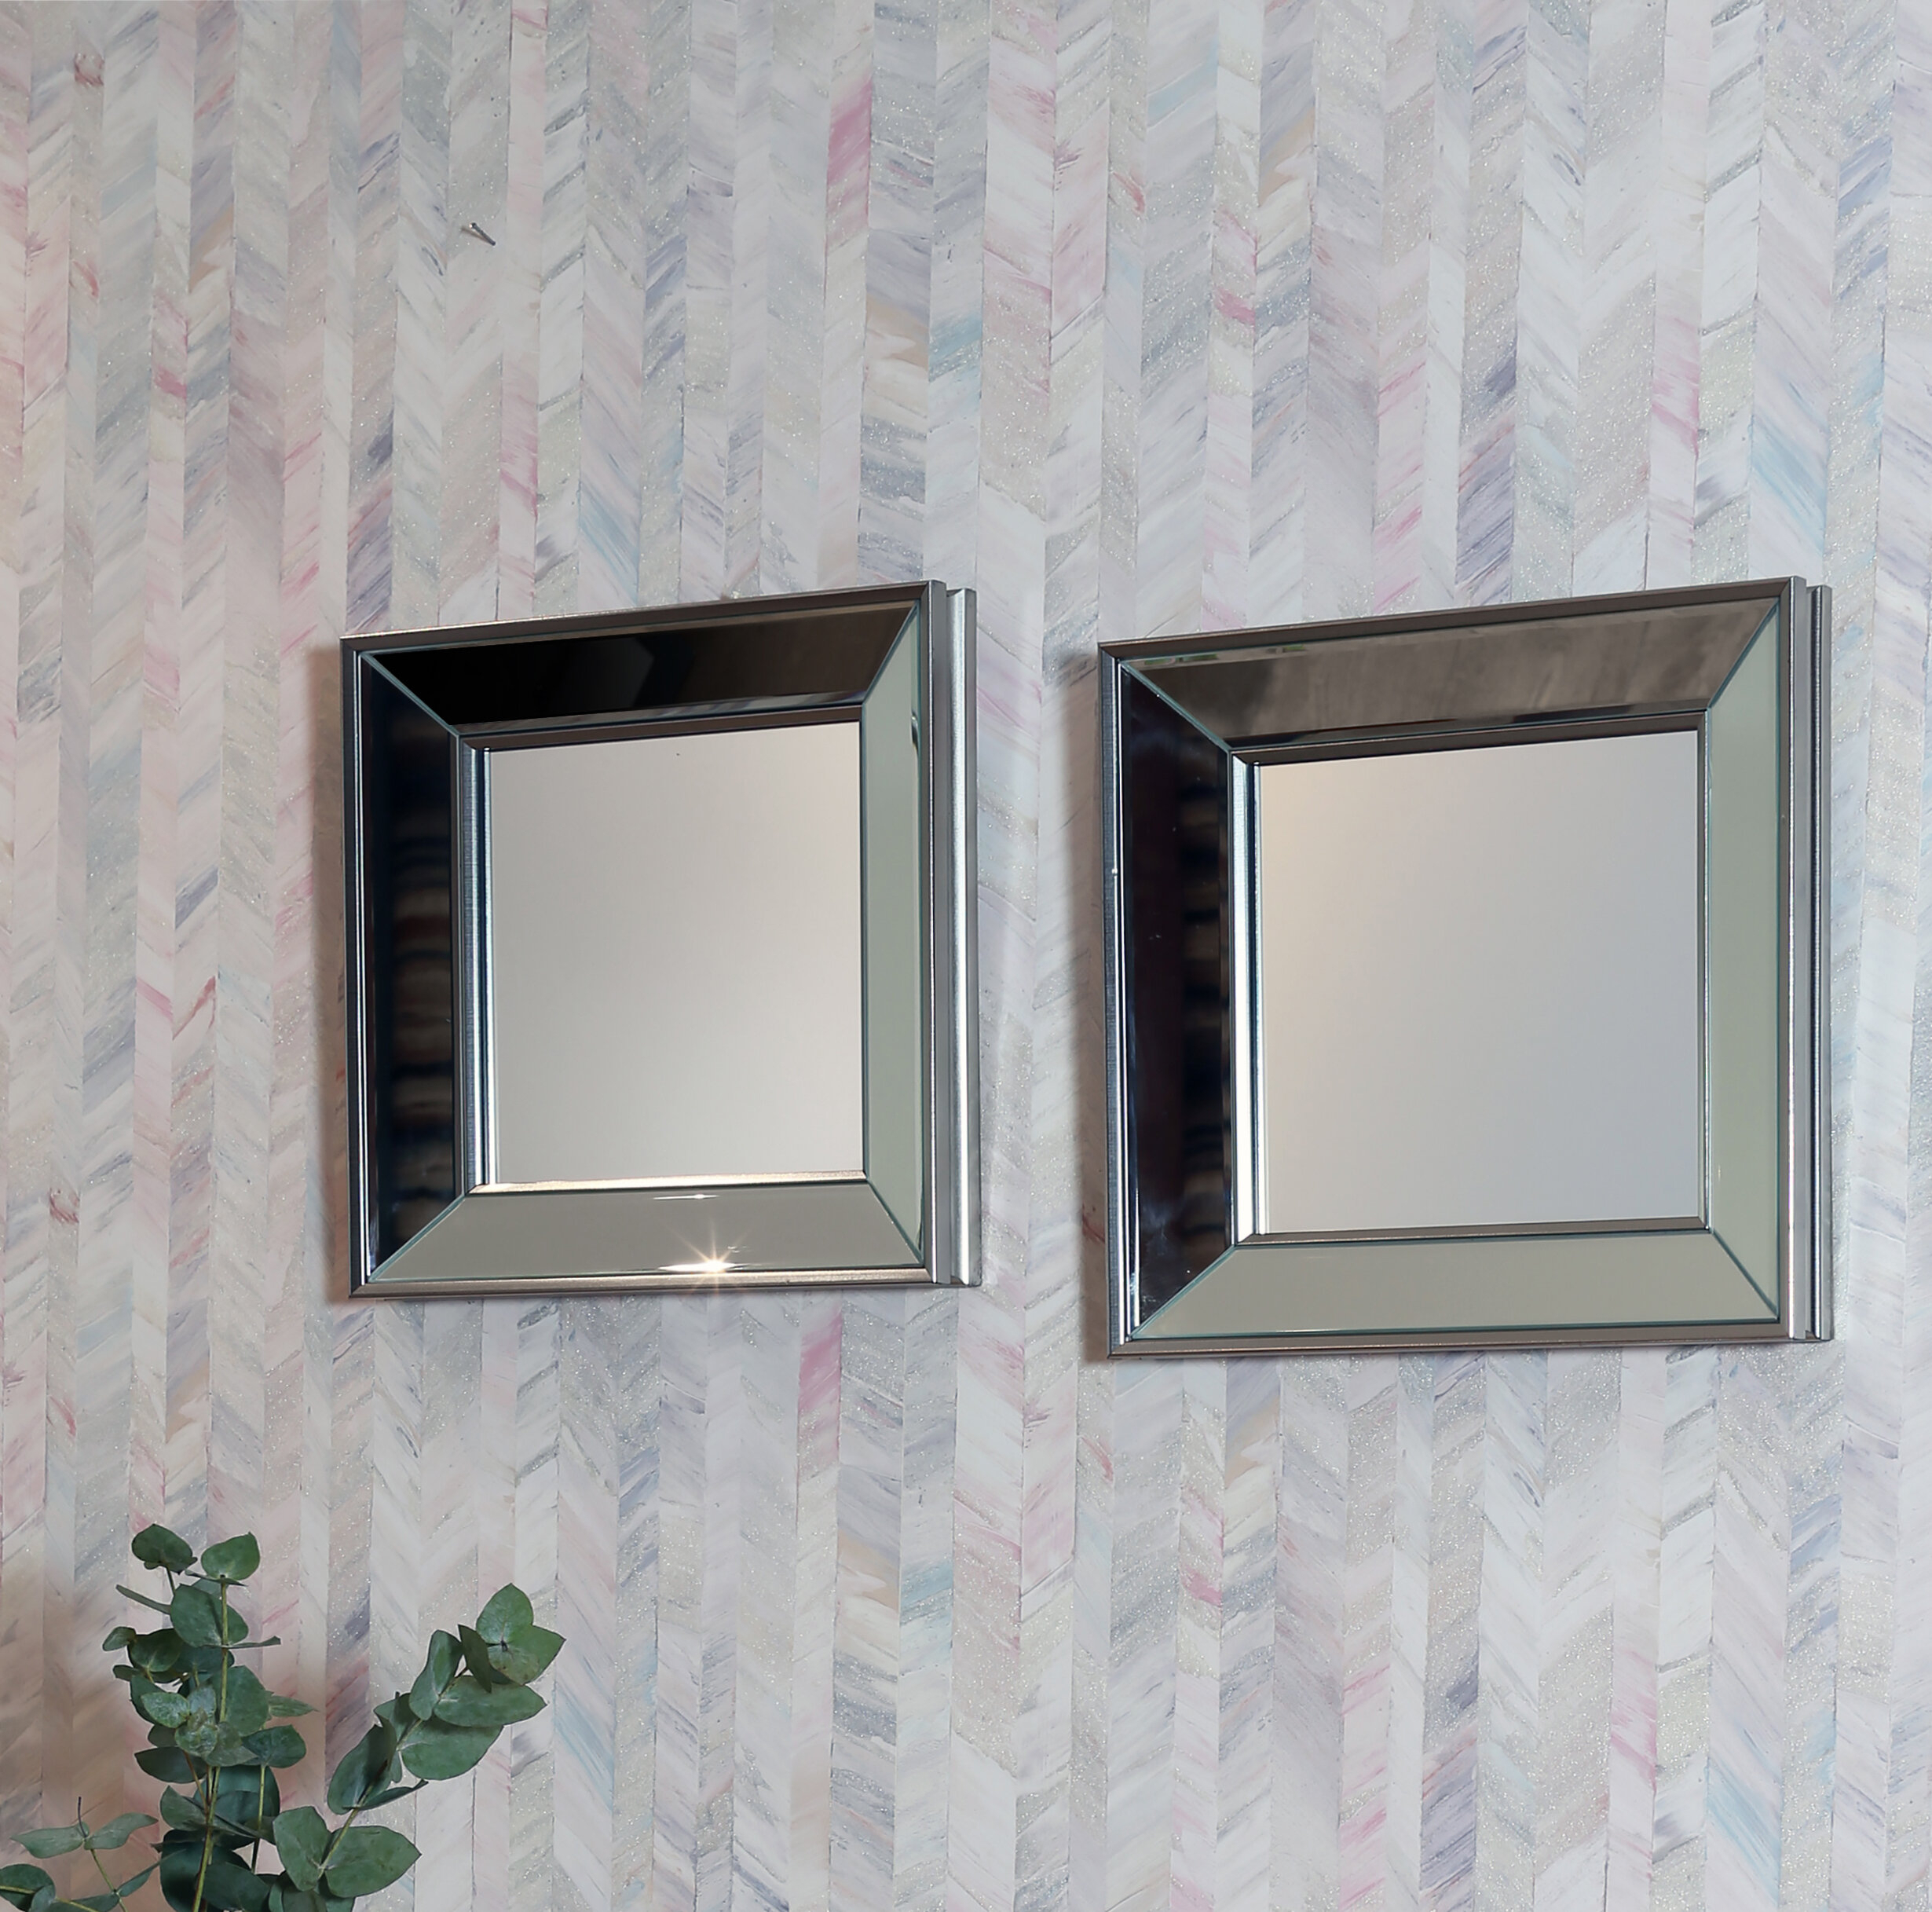 2 Piece Mirror Set | Wayfair Inside 2 Piece Priscilla Square Traditional Beveled Distressed Accent Mirror Sets (View 12 of 20)